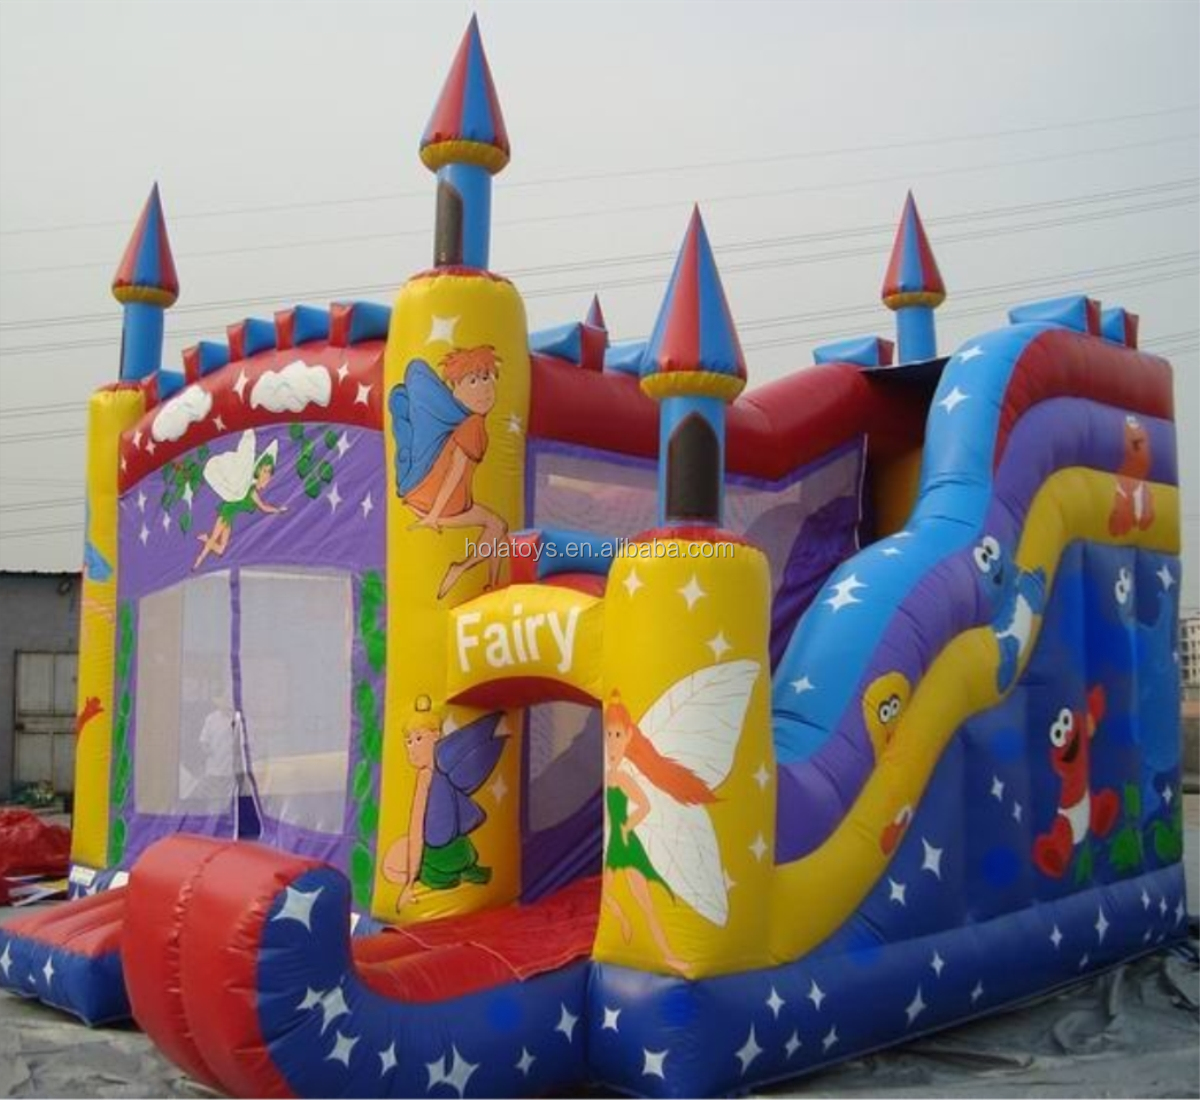 Hola new bouncy castle/inflatable bouncer/bounce house for sale